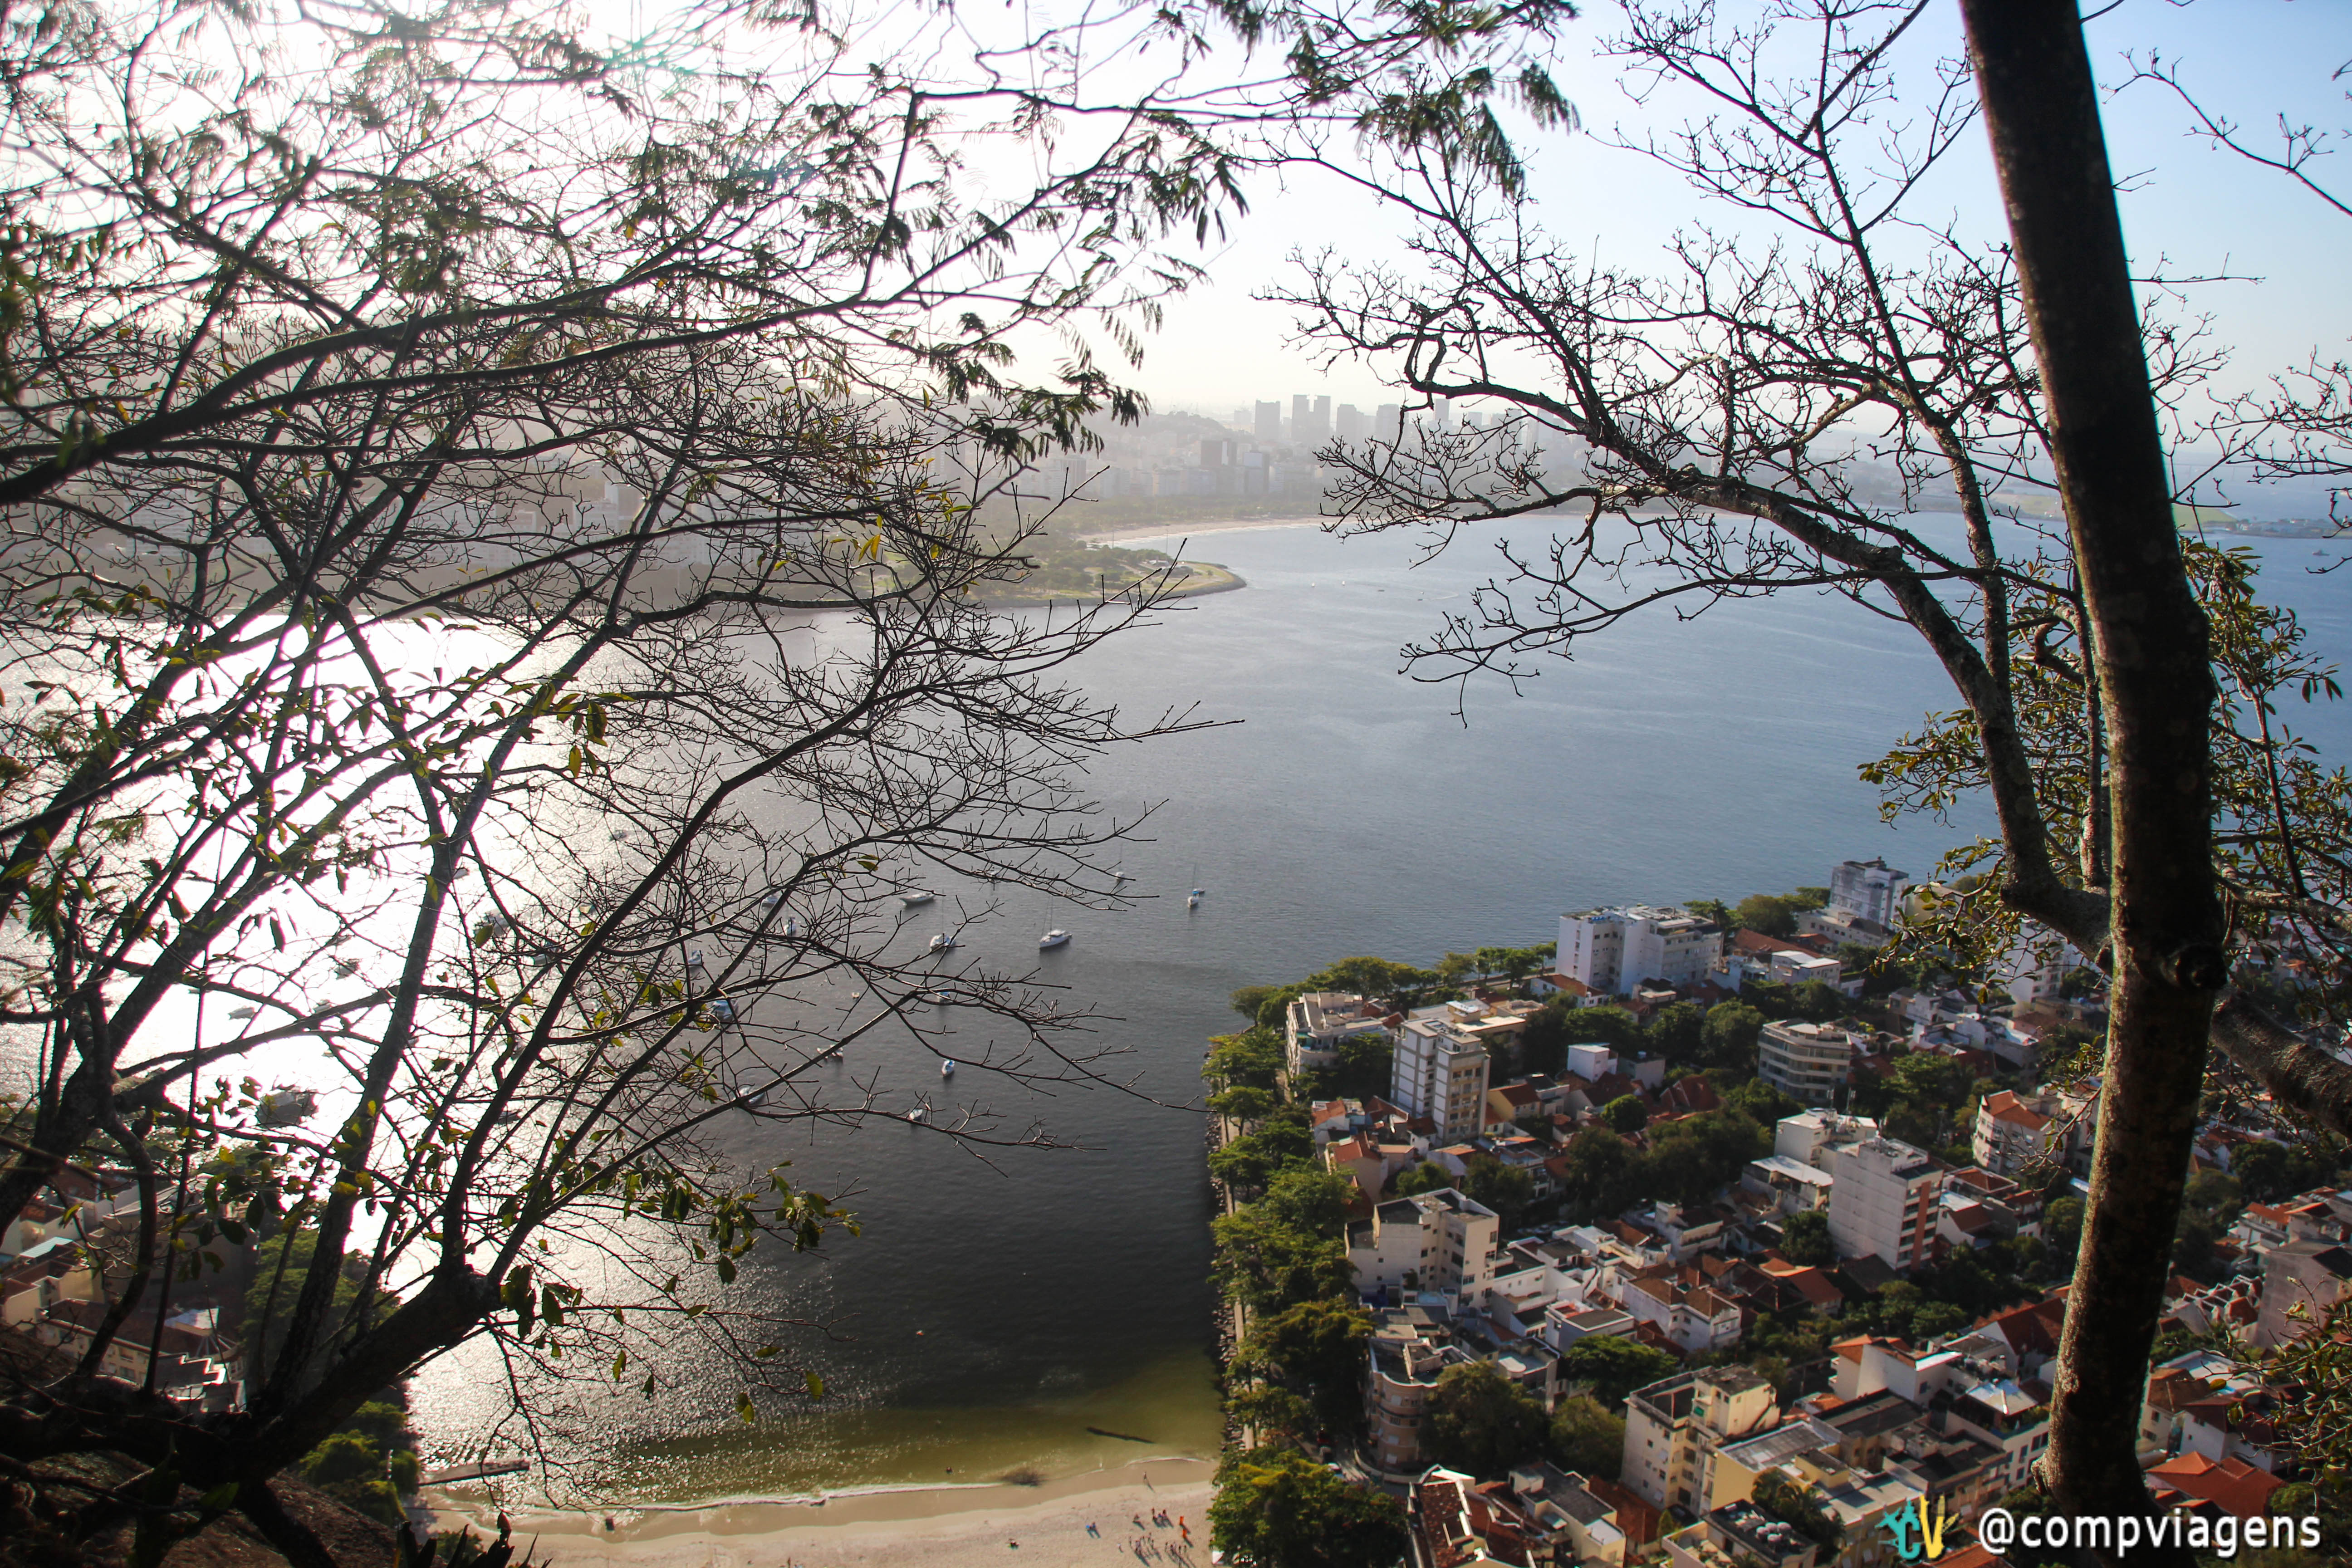 Vista da trilha do Morro da Urca